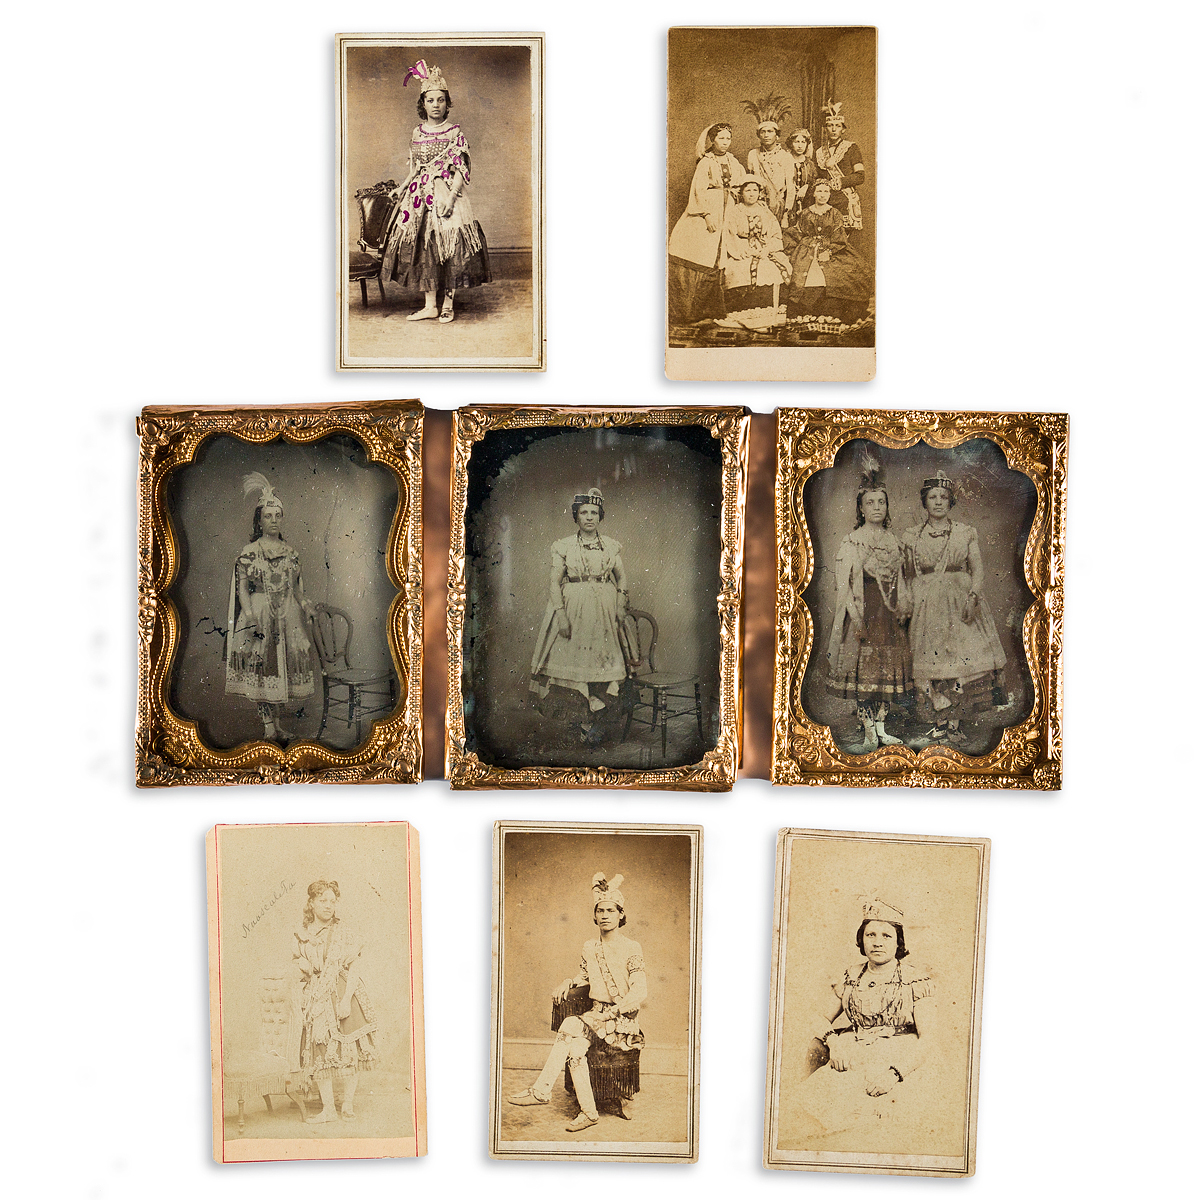 (AMERICAN-INDIANS--PHOTOGRAPHS)-Group-of-8-photographs-of-a-performing-troupe-in-New-York-and-Canada